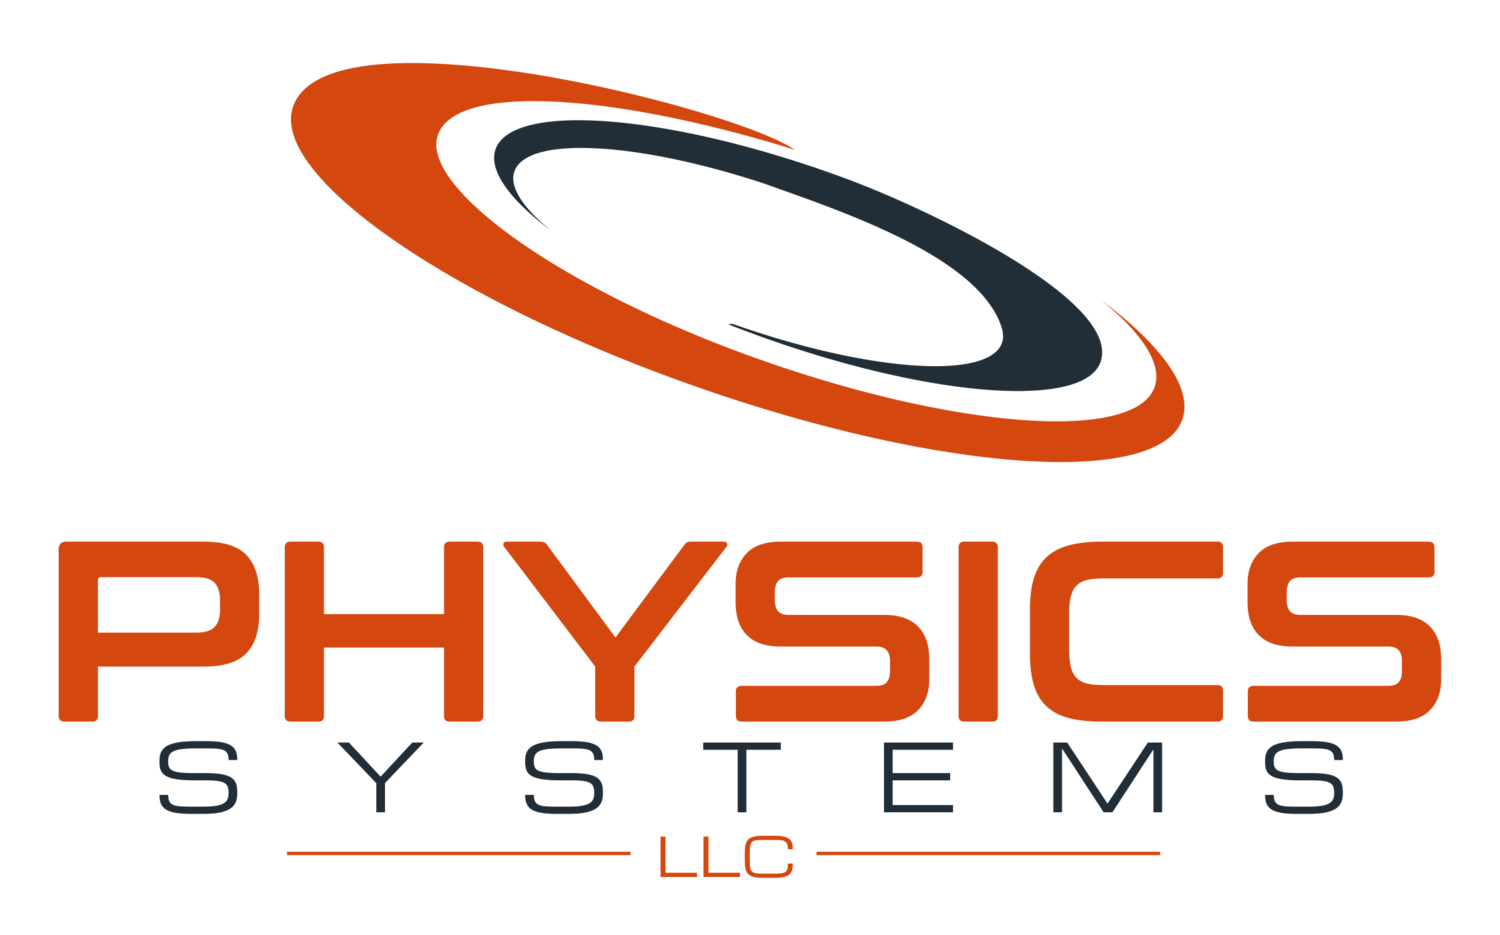 Physics Systems LLC